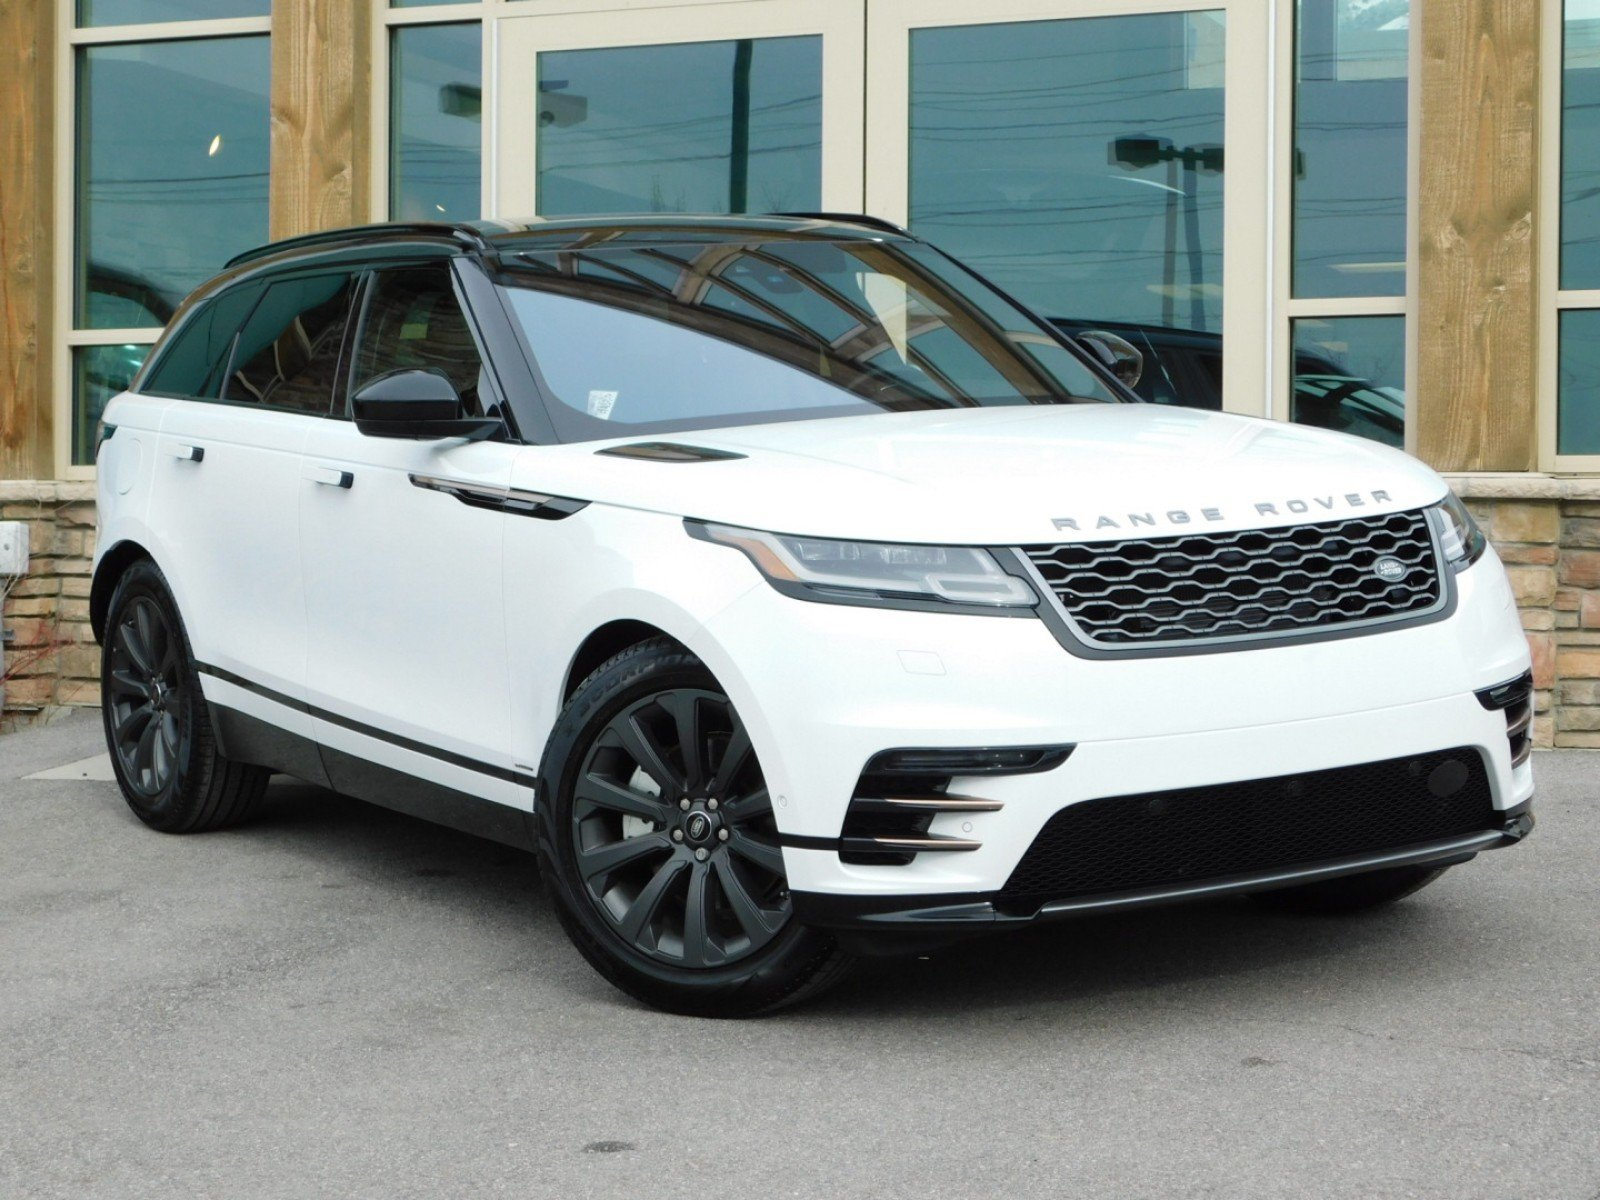 New Land Rover Range Rover Velar S With Navigation 4wd